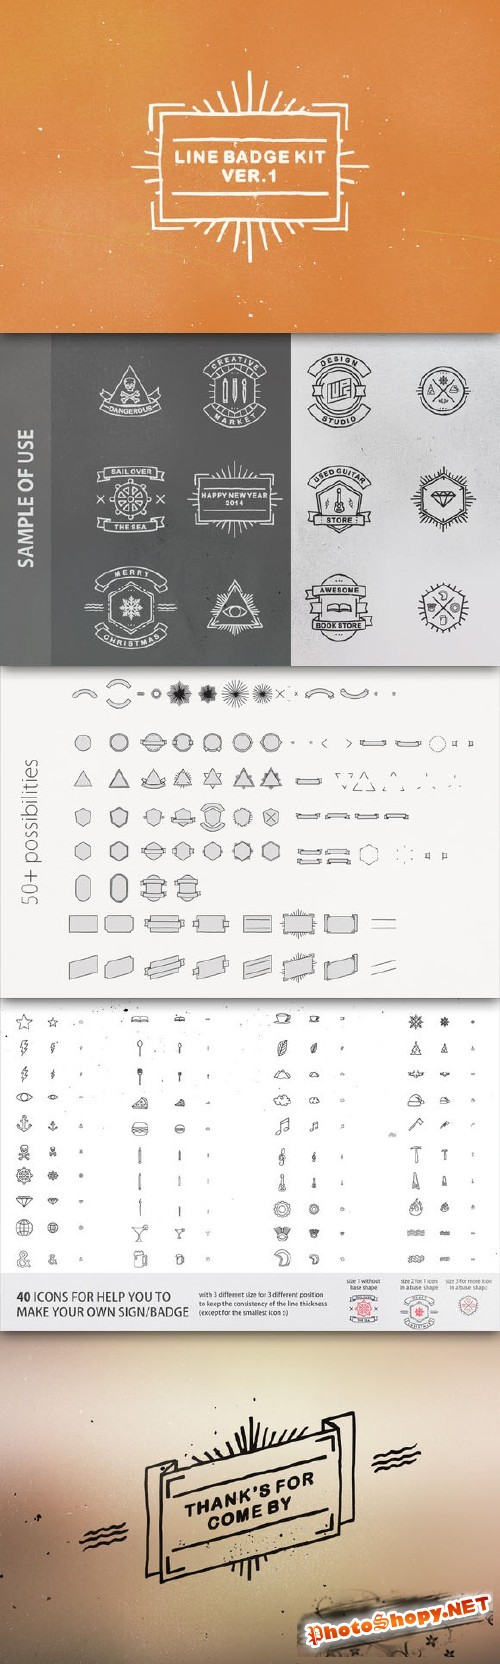 CreativeMarket - Line Badge Kit ver. 1